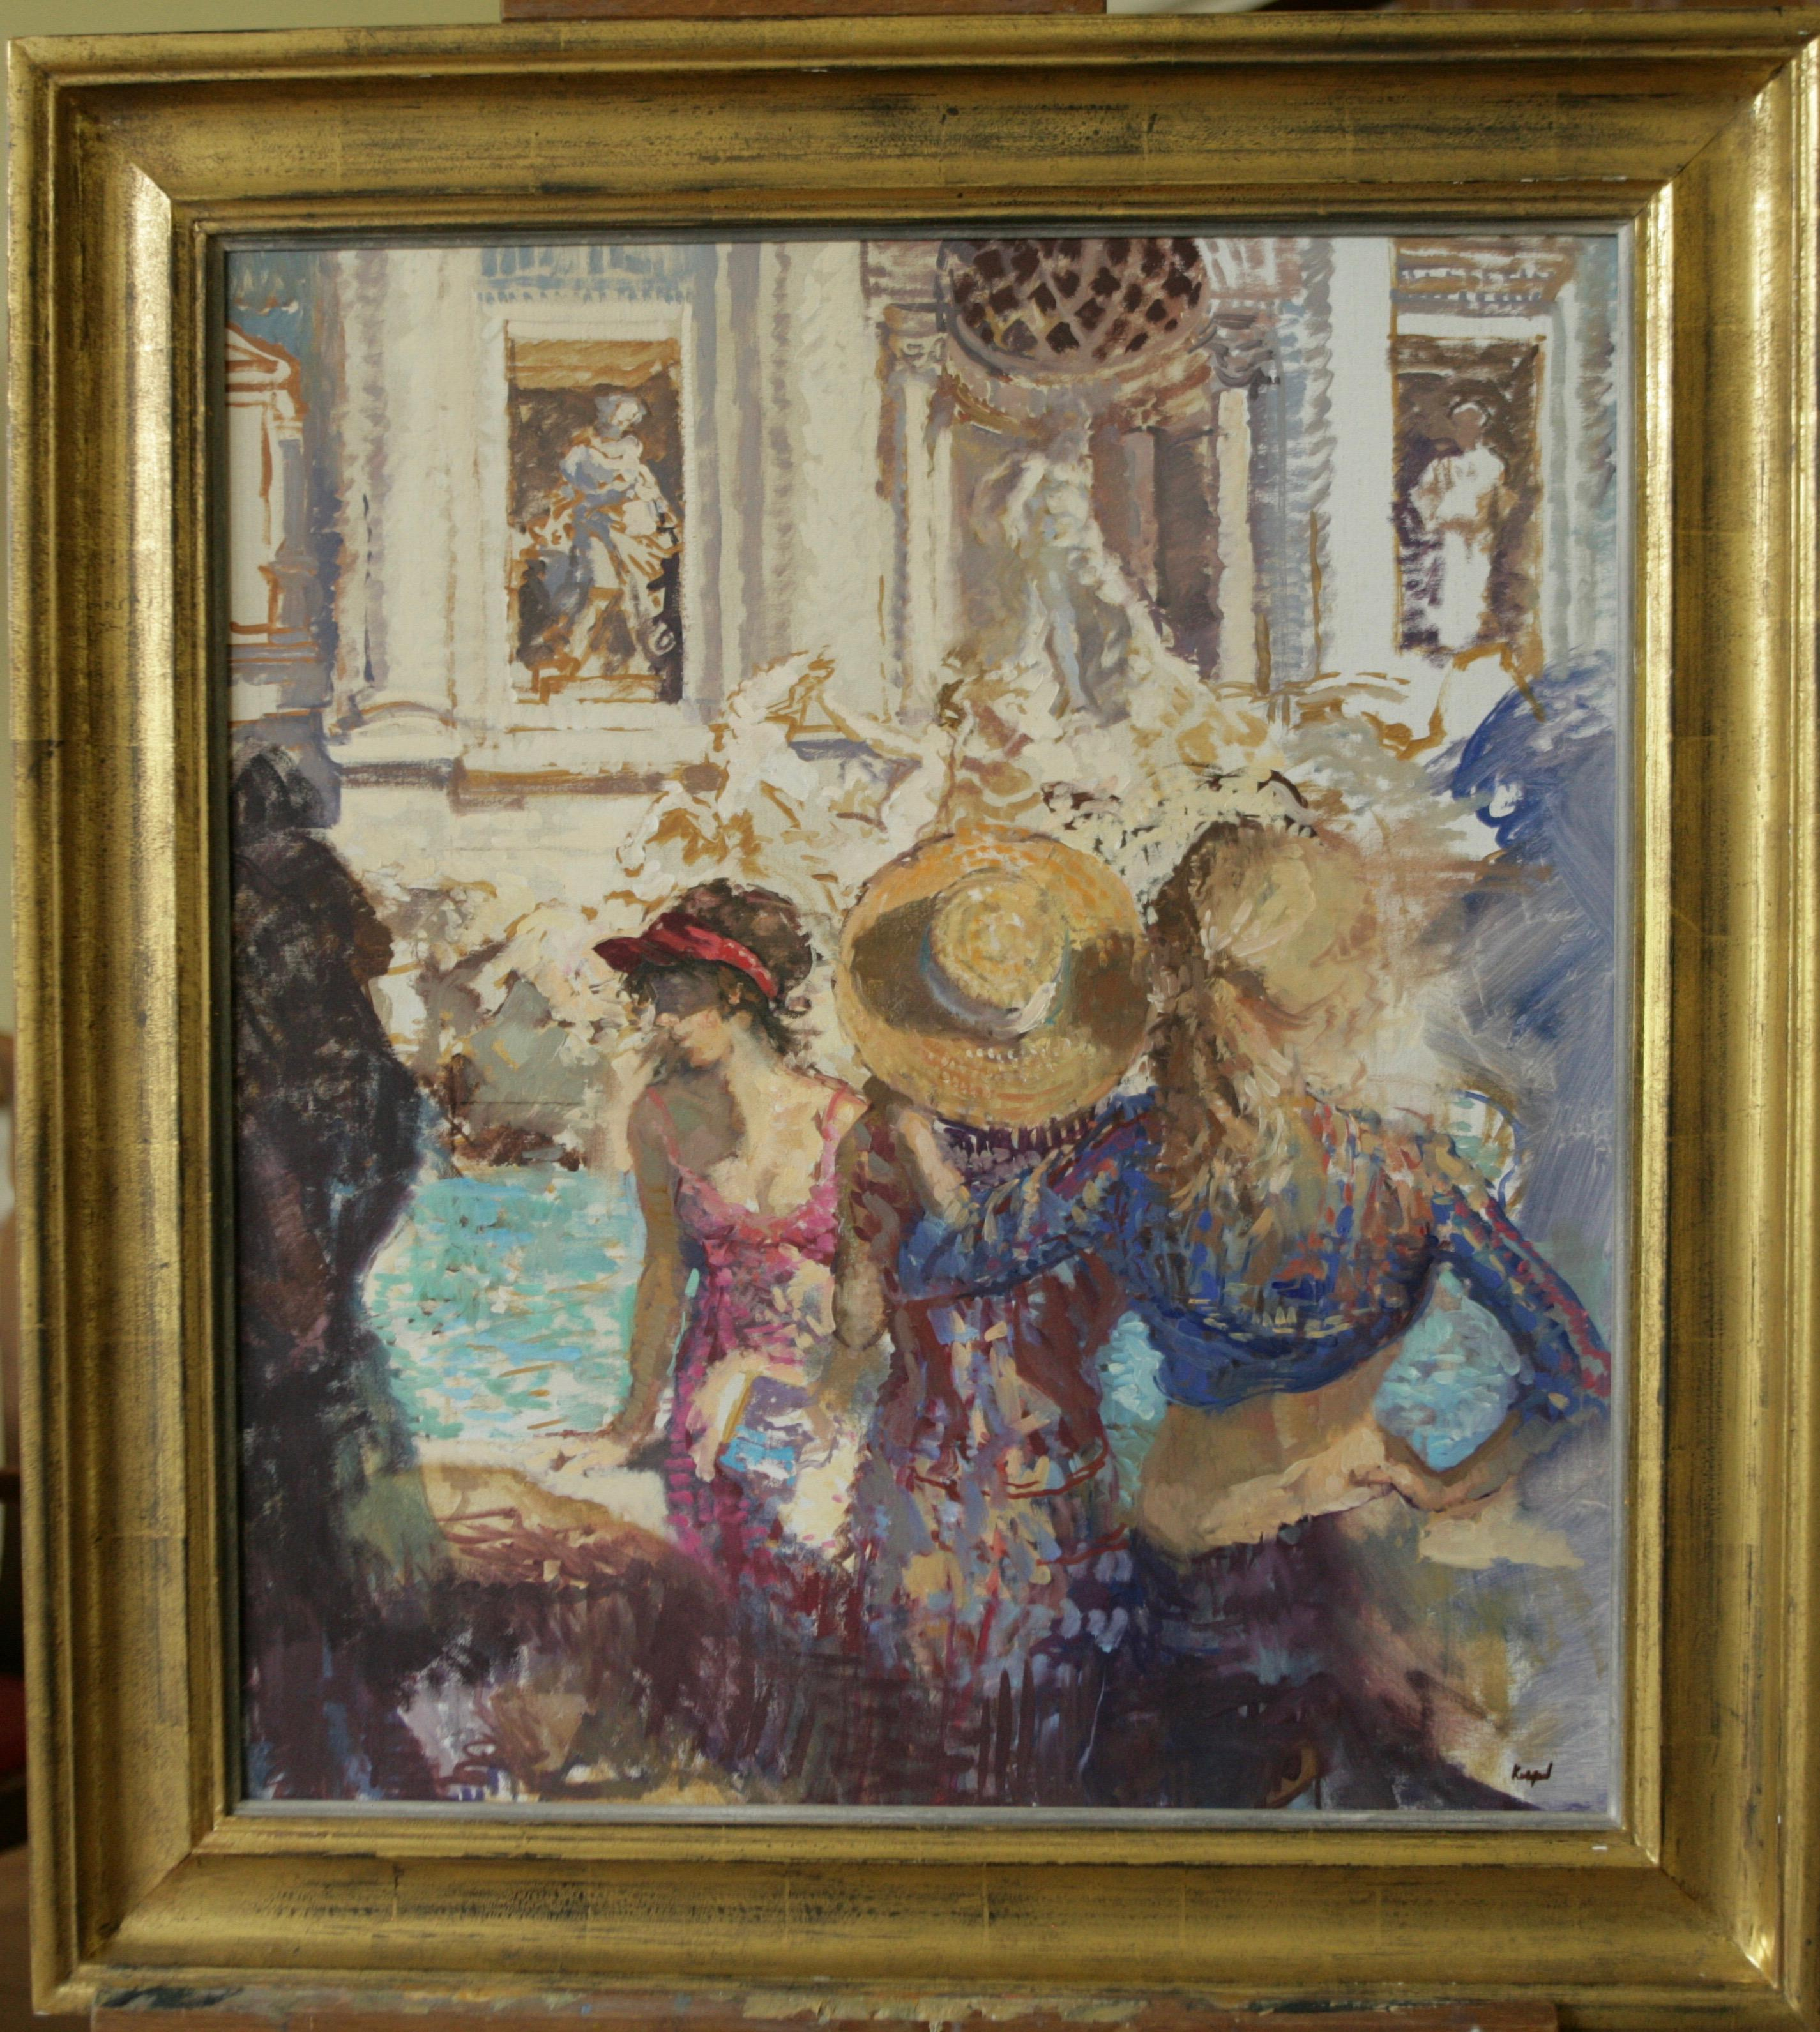 TRIVI FOUNTAIN SIGHTSEEING ROME..Peter Kuhfeld RP NEAC English impressionist